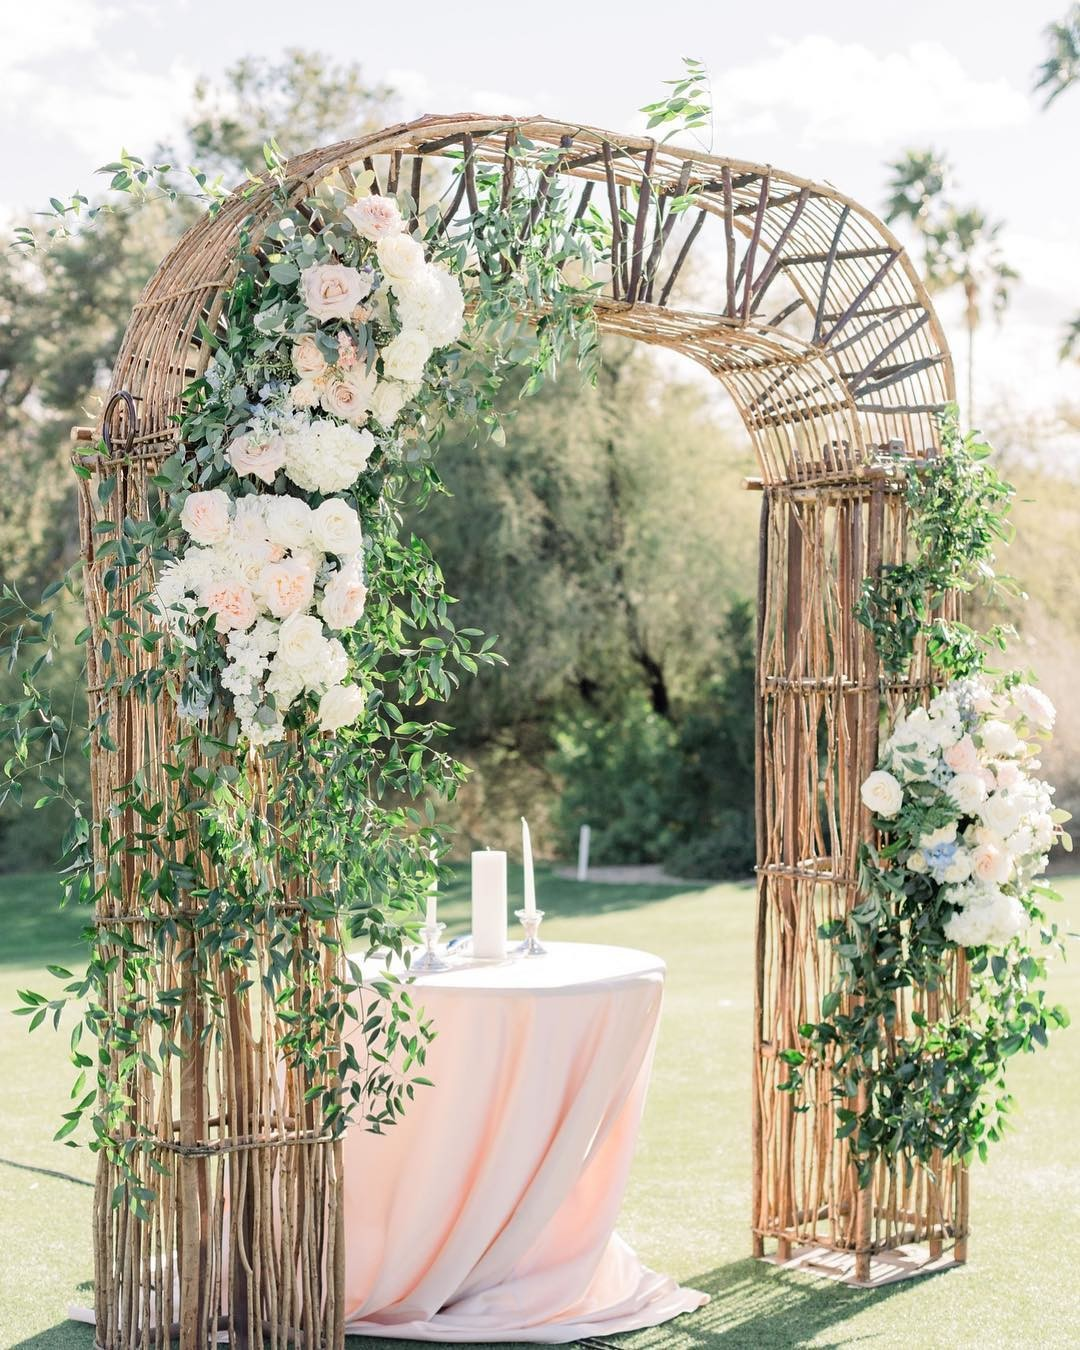 Floral arch set up, perfect for any season 🌸🌿